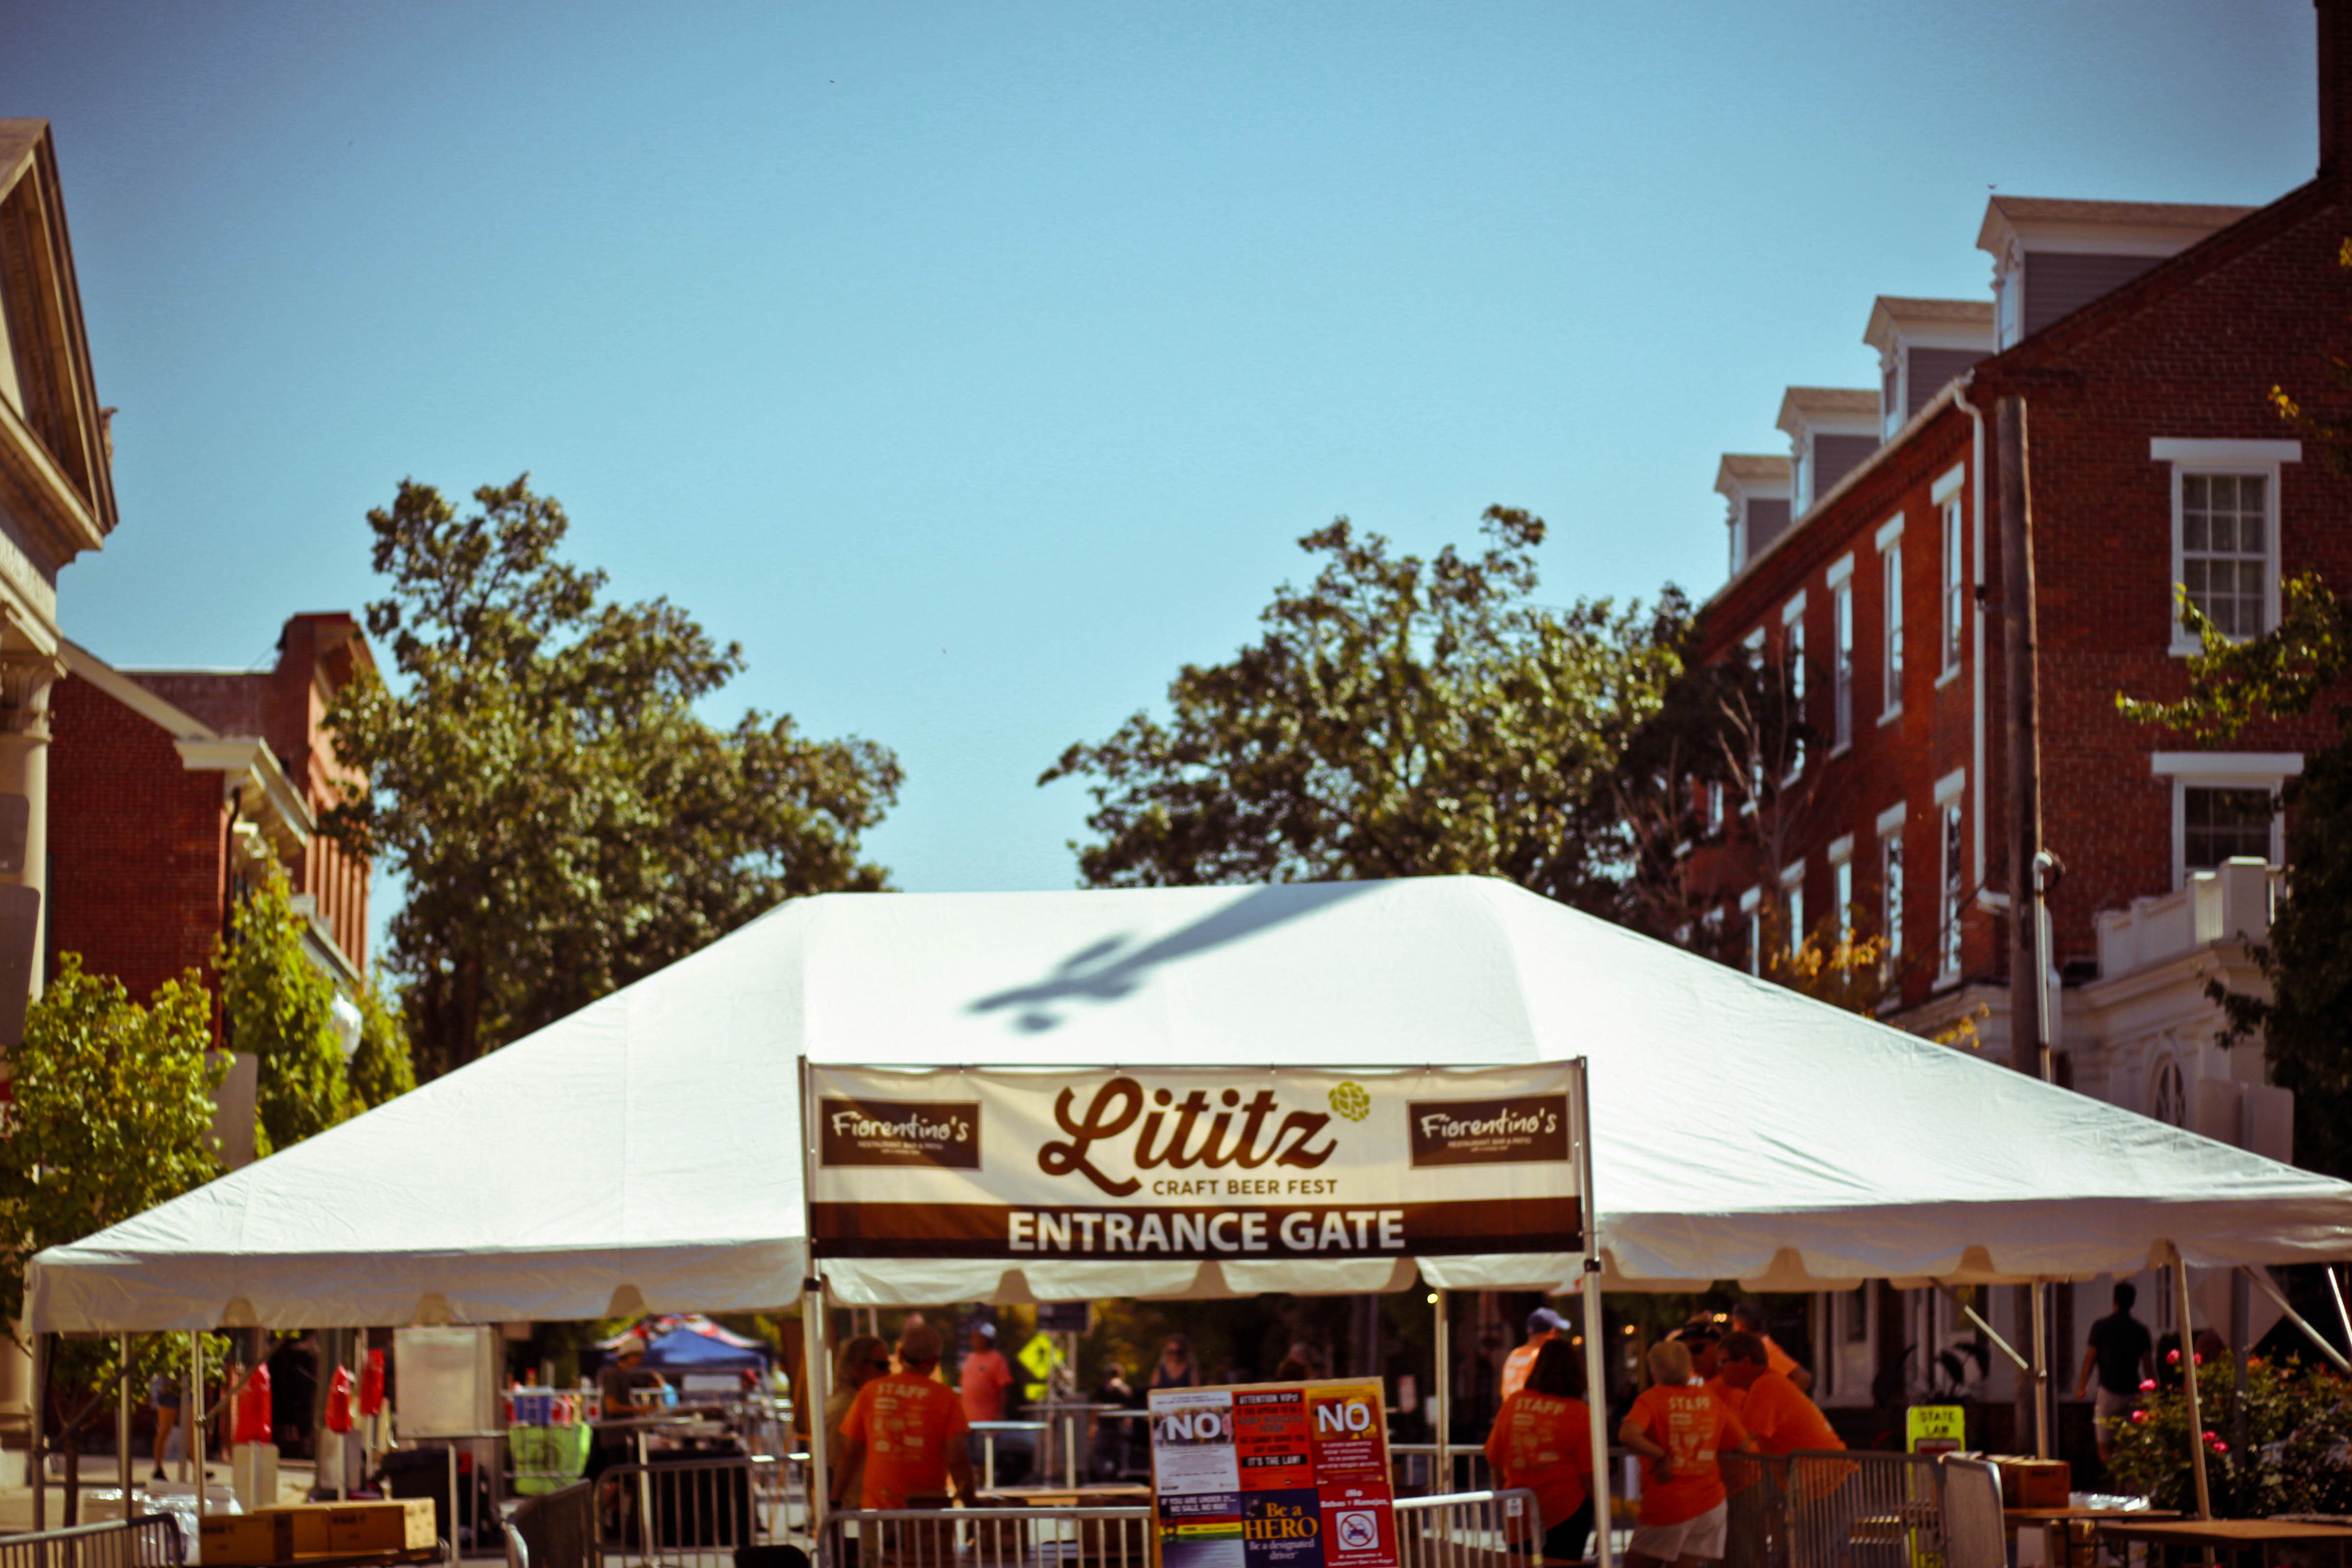 Lititz Craft Beer Fest – A charity fundraising craft beer festival